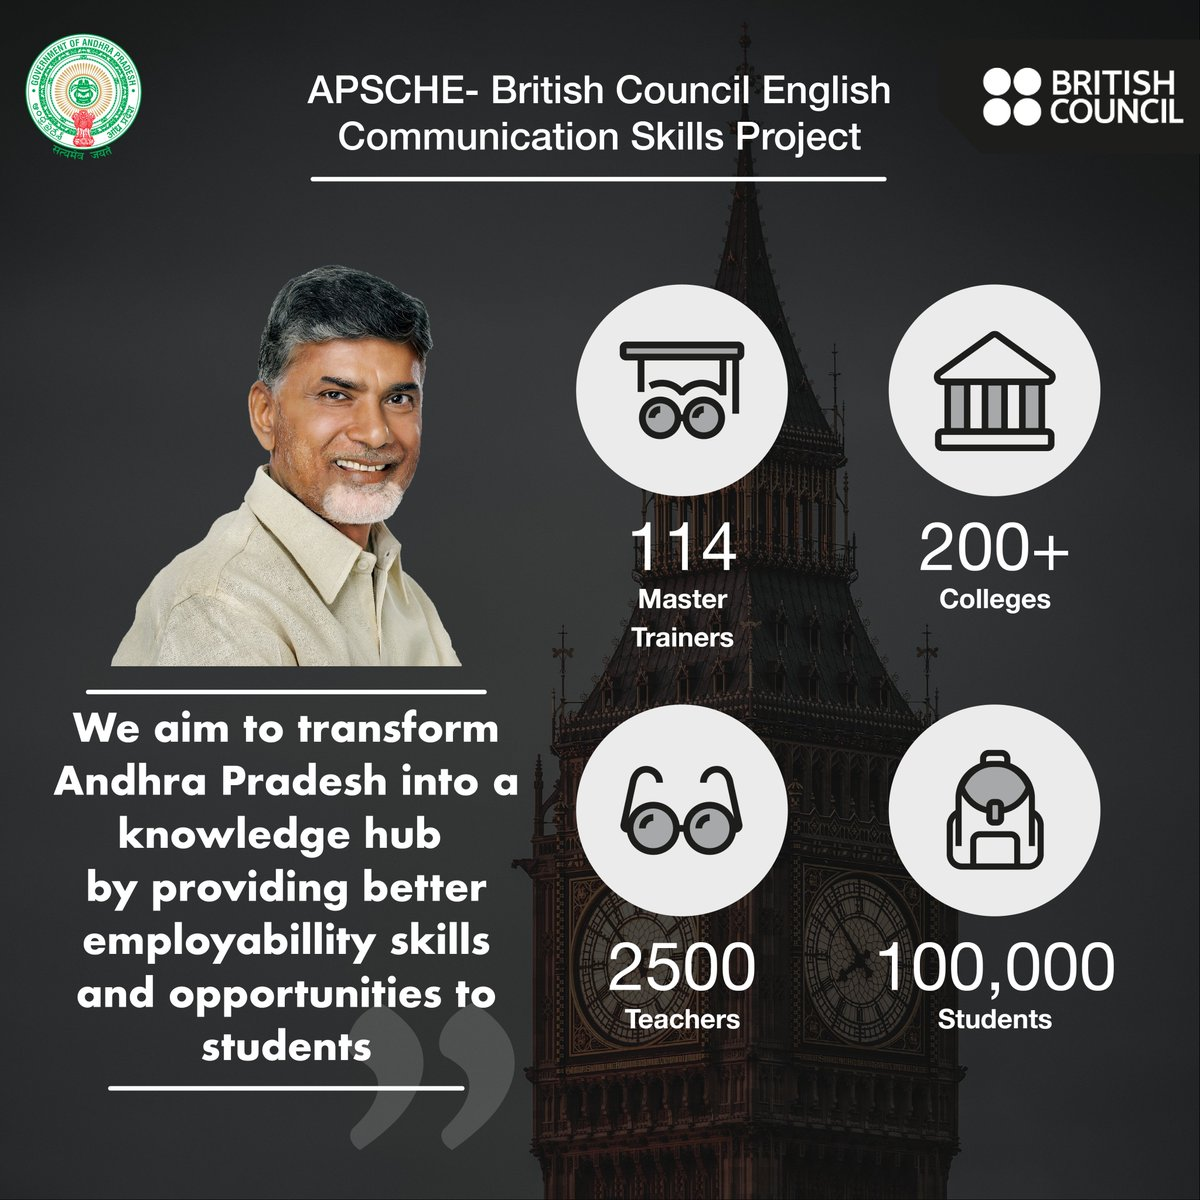 APSCHE & British Council are near the completion of the first phase of it's Master Training Programme to boost Employability skills in AP.